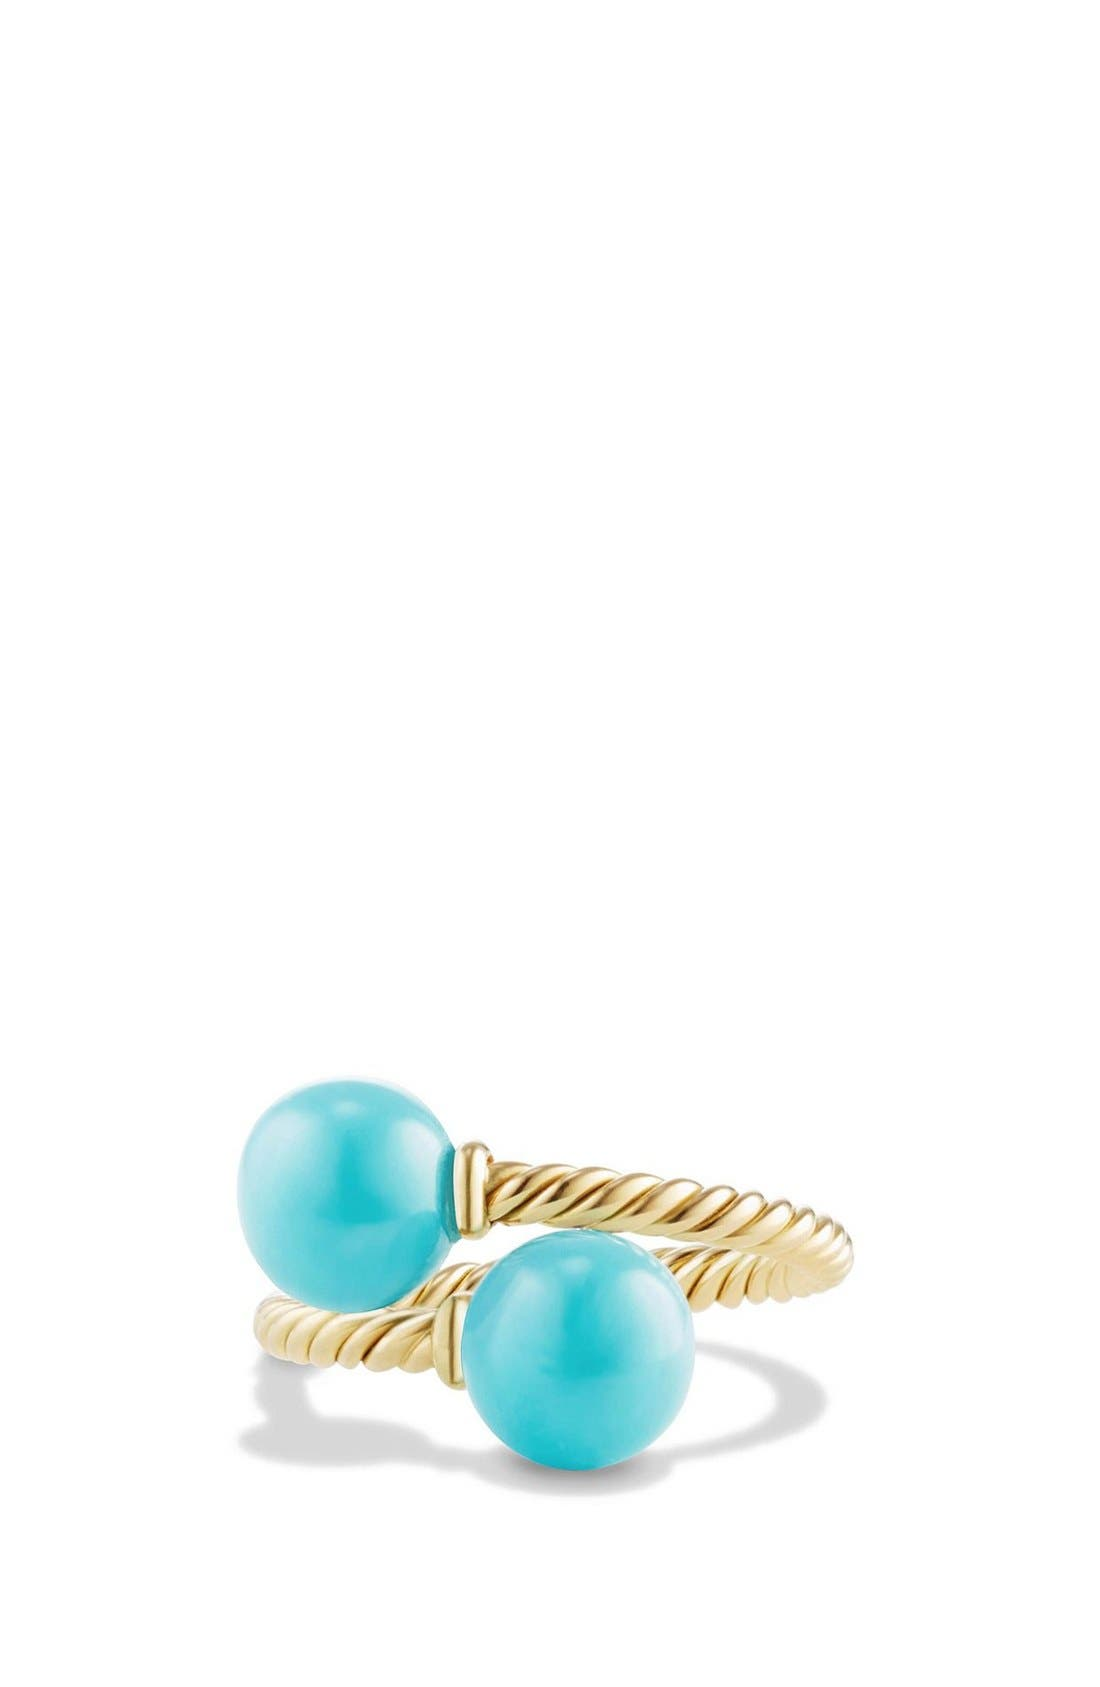 'Solari' Bead Ring with Turquoise in 18K Gold,                         Main,                         color, Turquoise